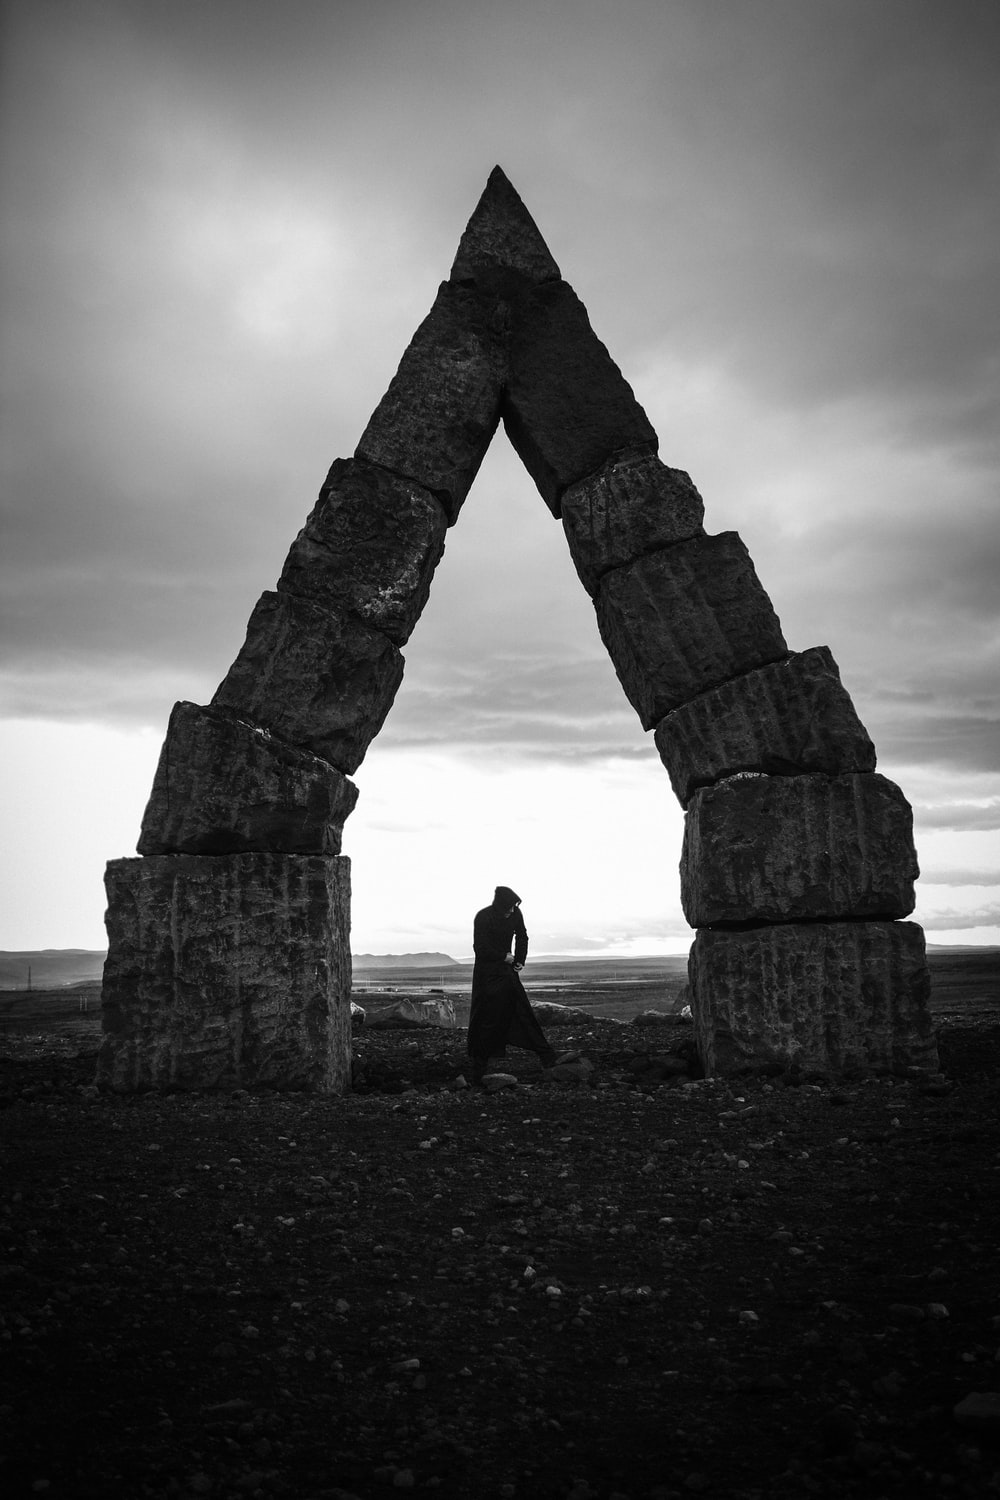 grayscale photography of person standing near arch decor